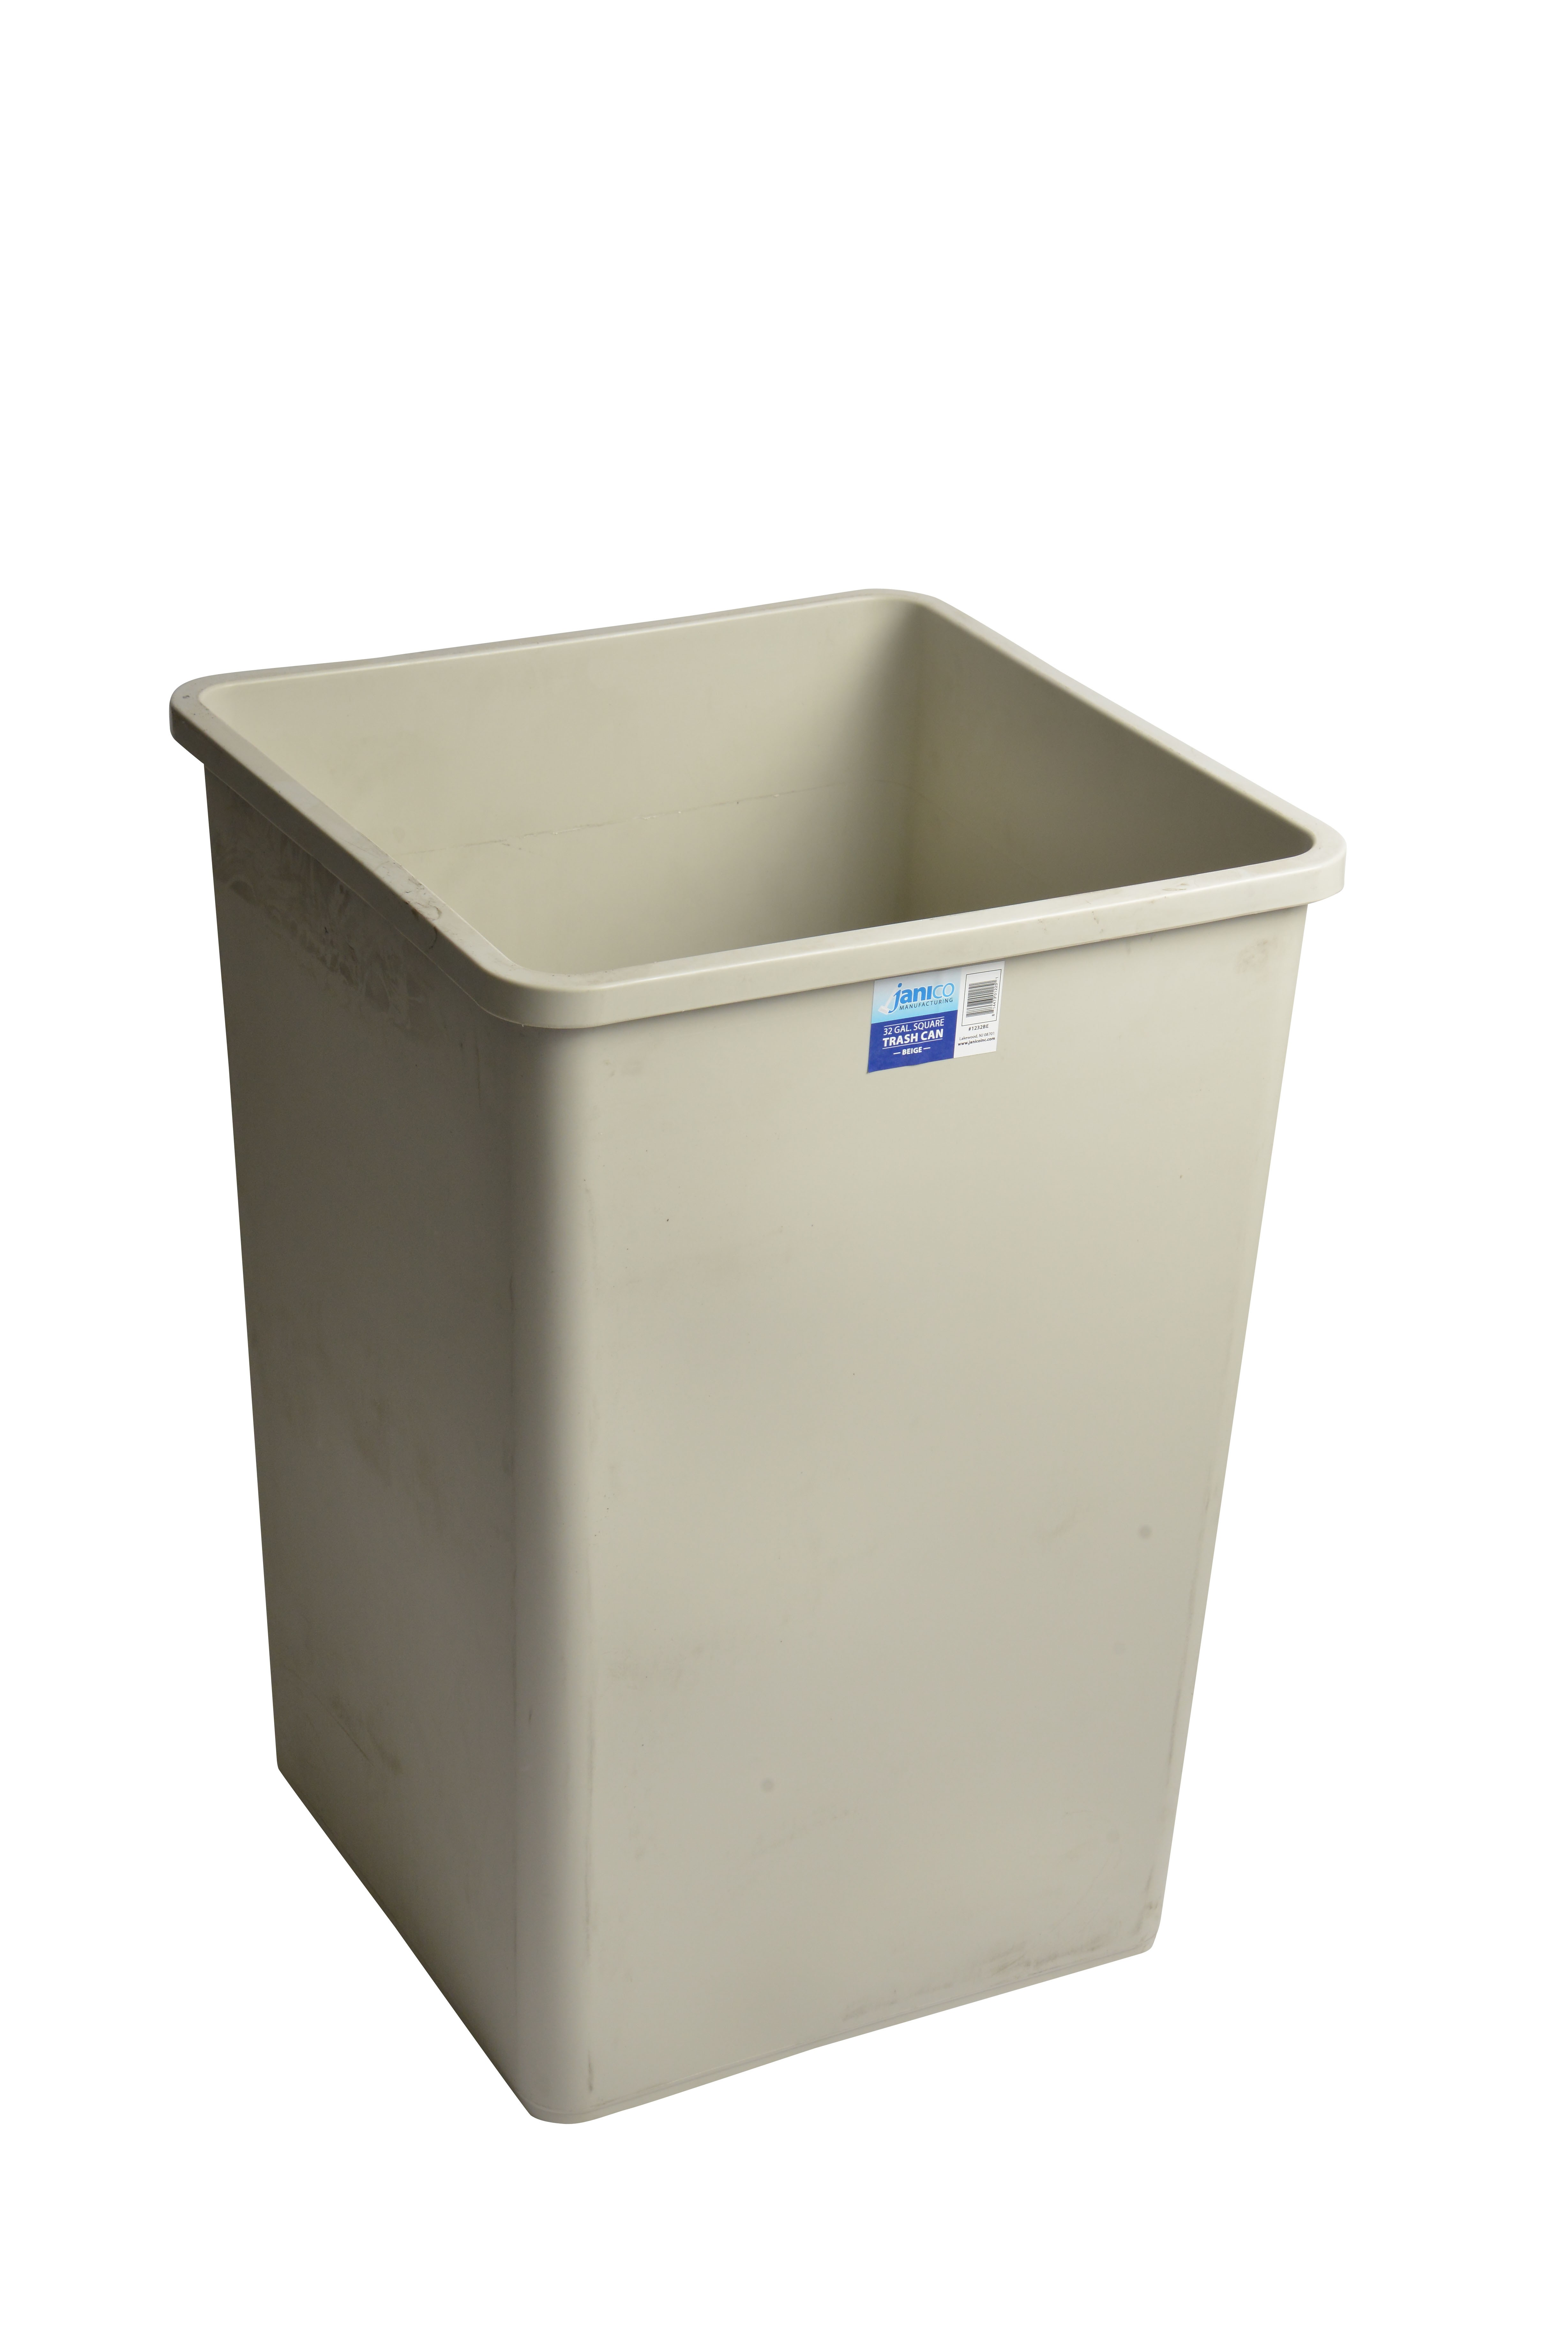 1232be Beige Square Garbage Can With 32 Gallon Capacity